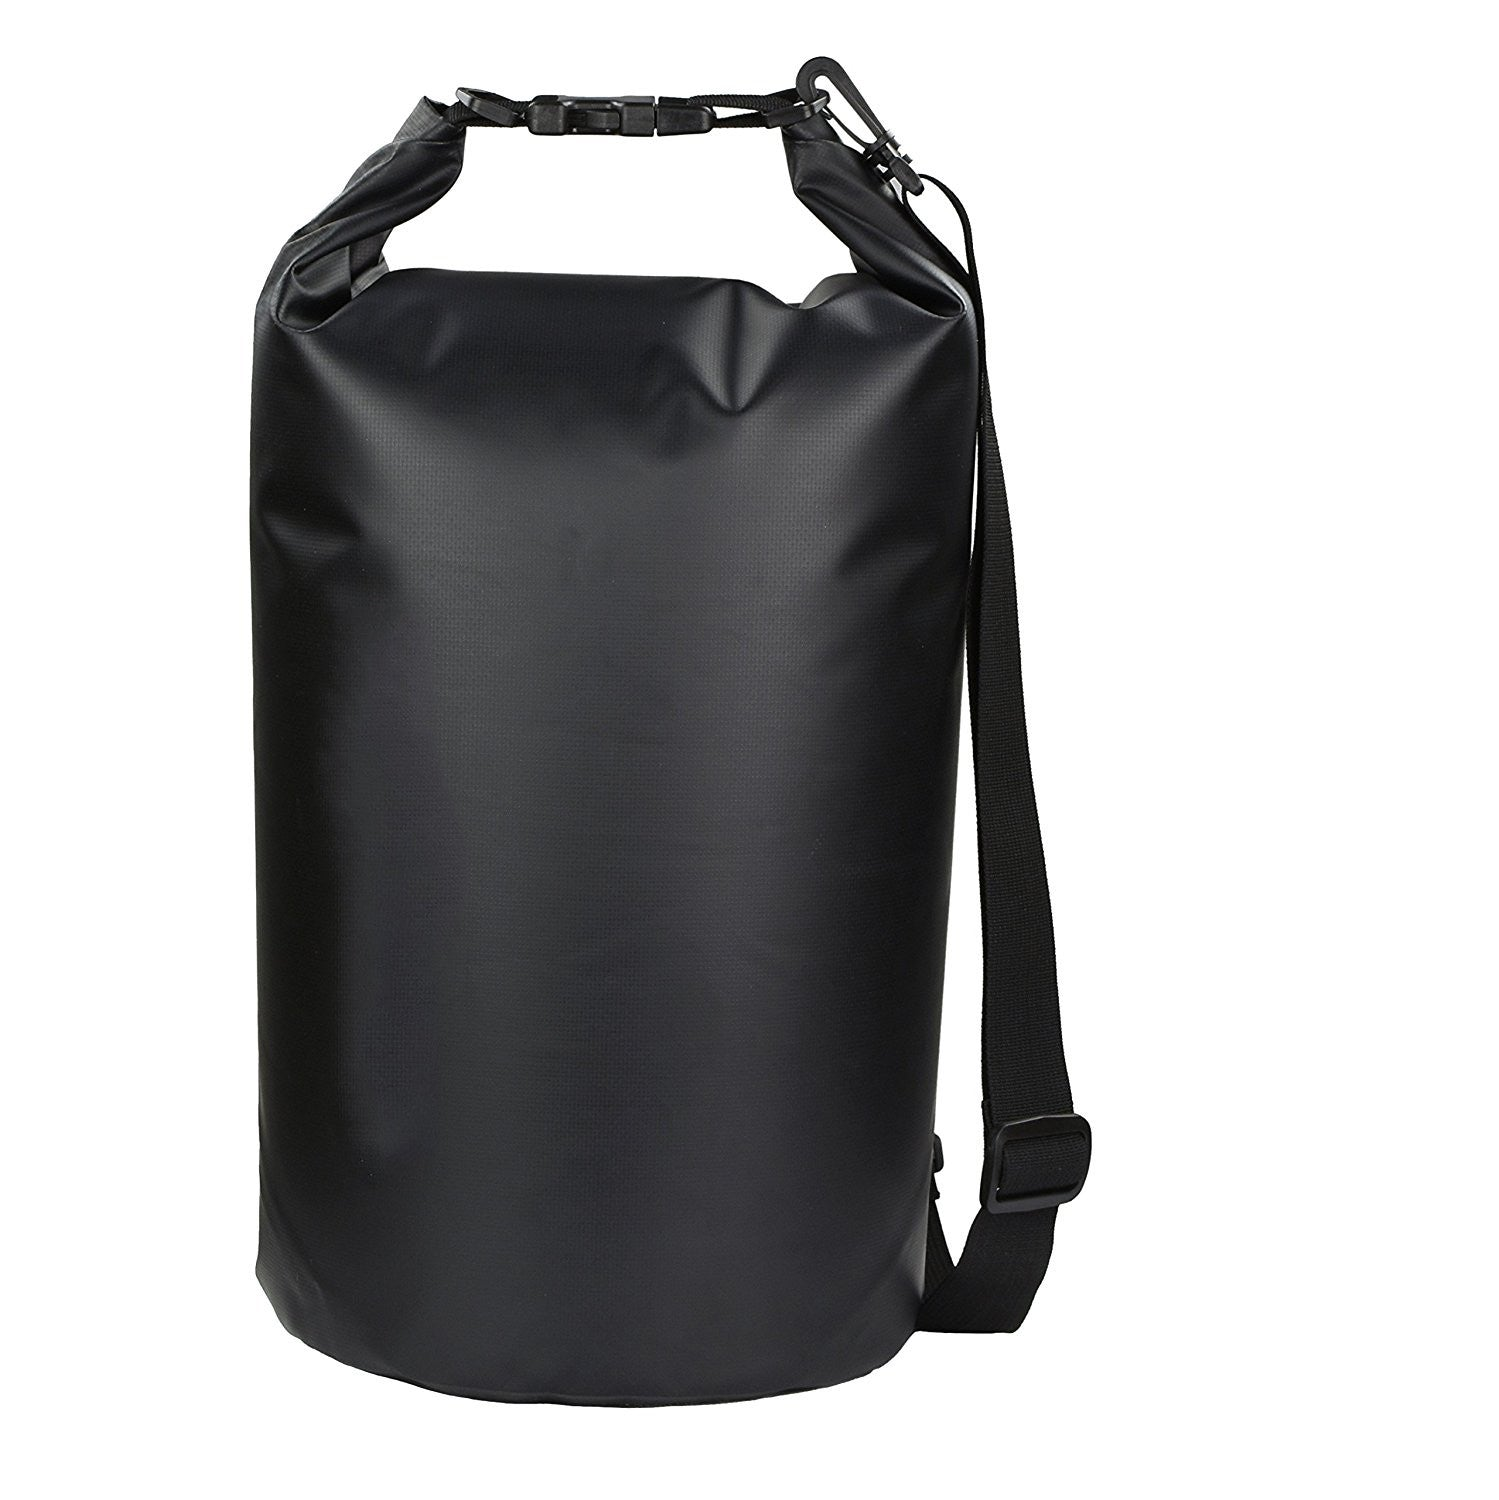 COMZENDLE Waterproof Dry Bag